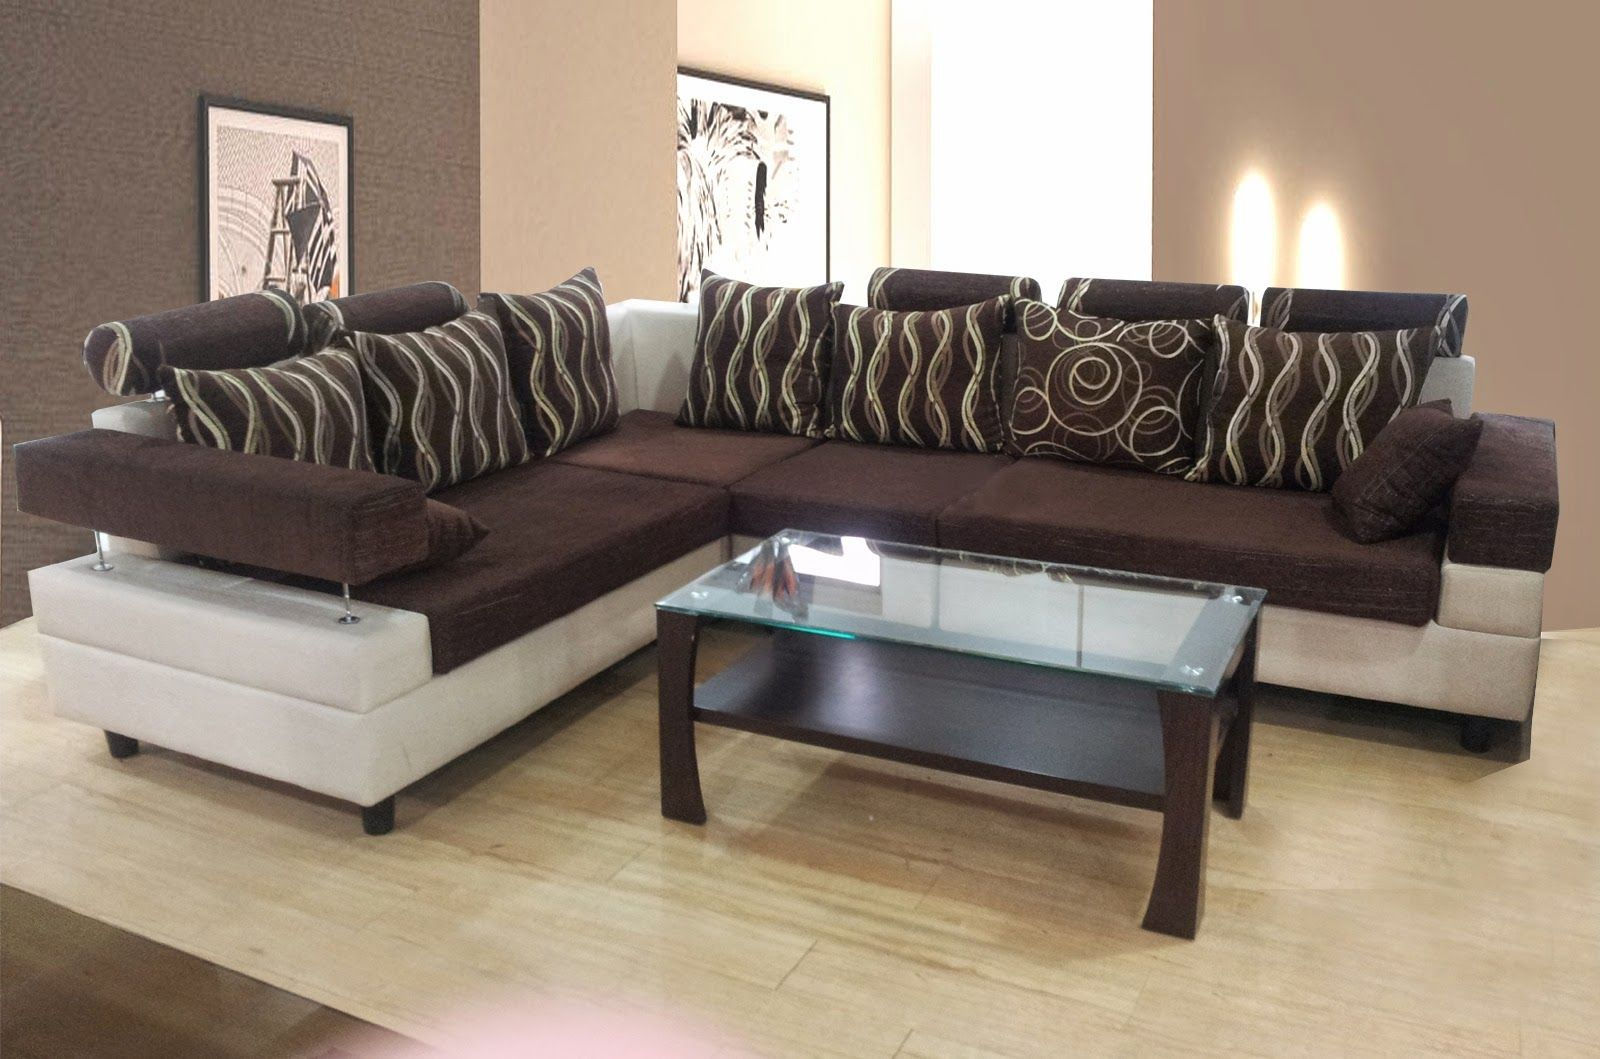 Nairobi luxe sofa sets welcome to nairobi luxe furniture for 9 seater sofa set designs